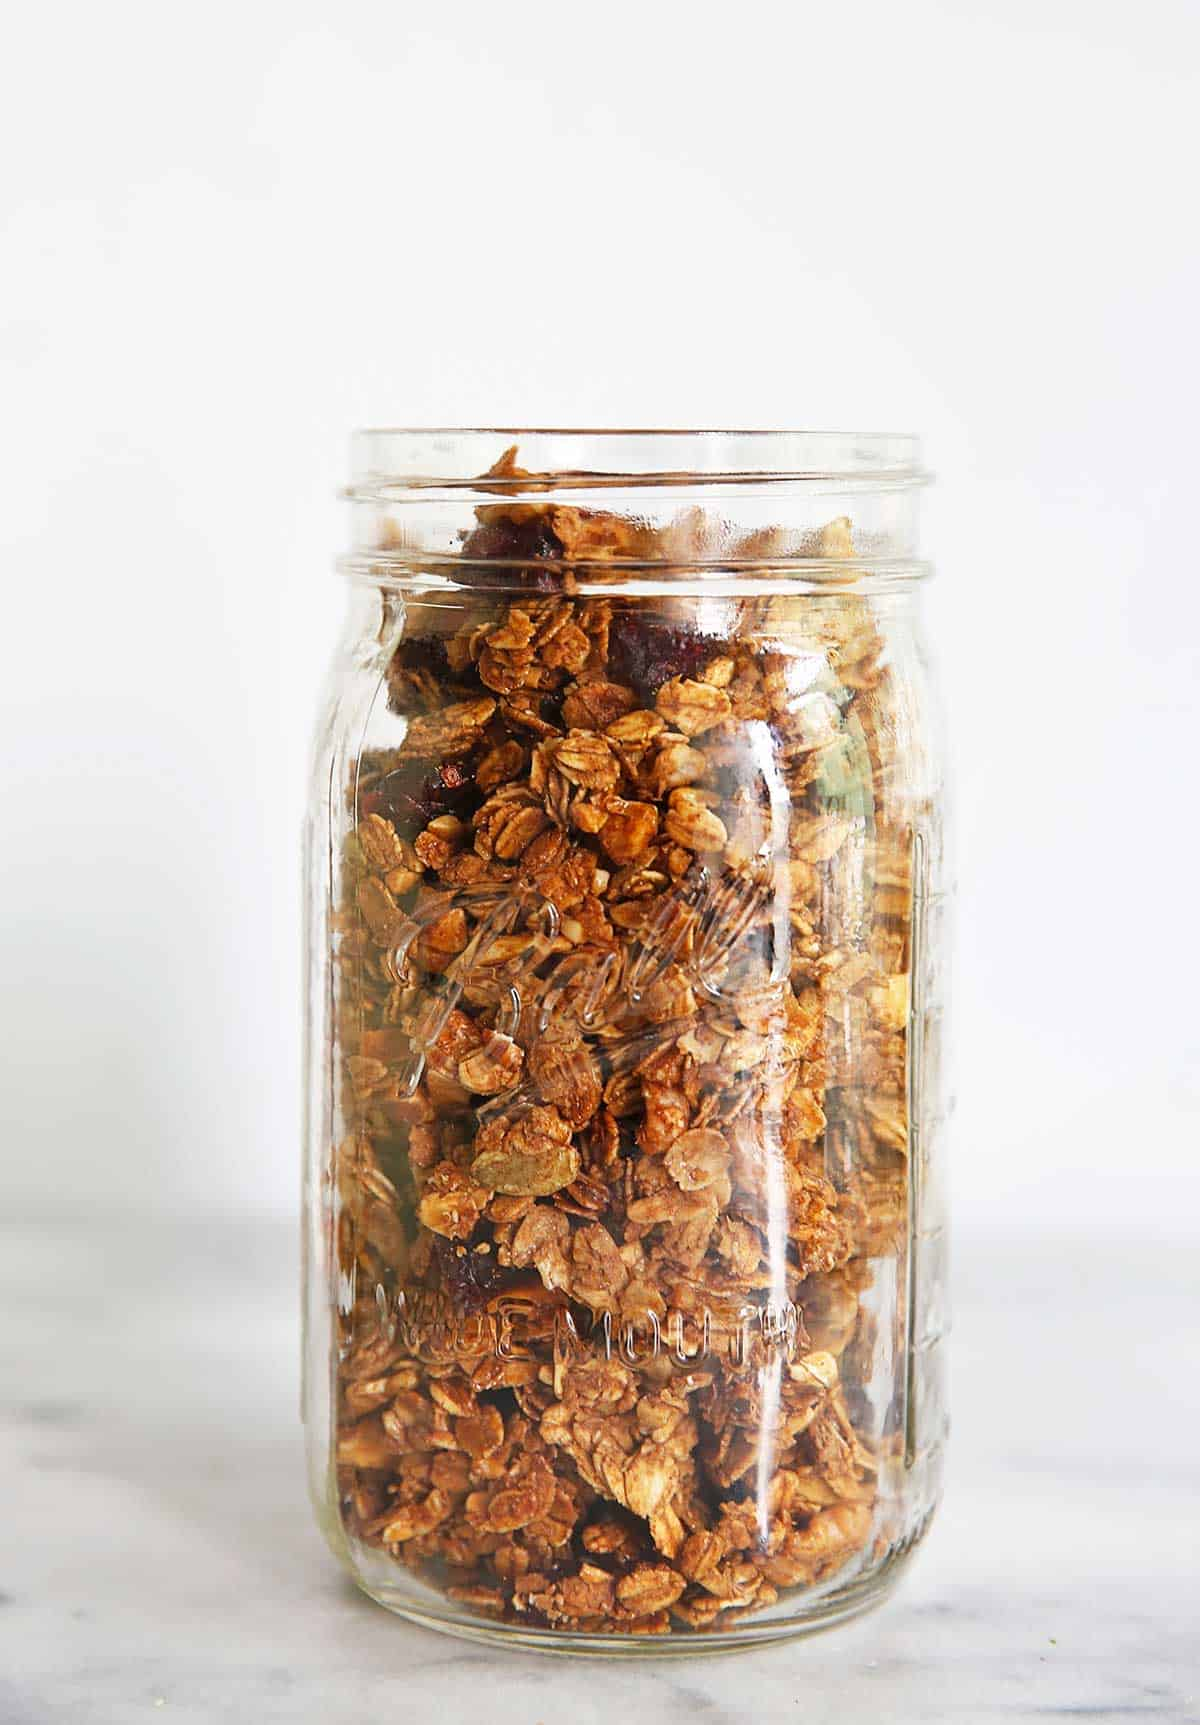 Homemade gluten free granola in jar